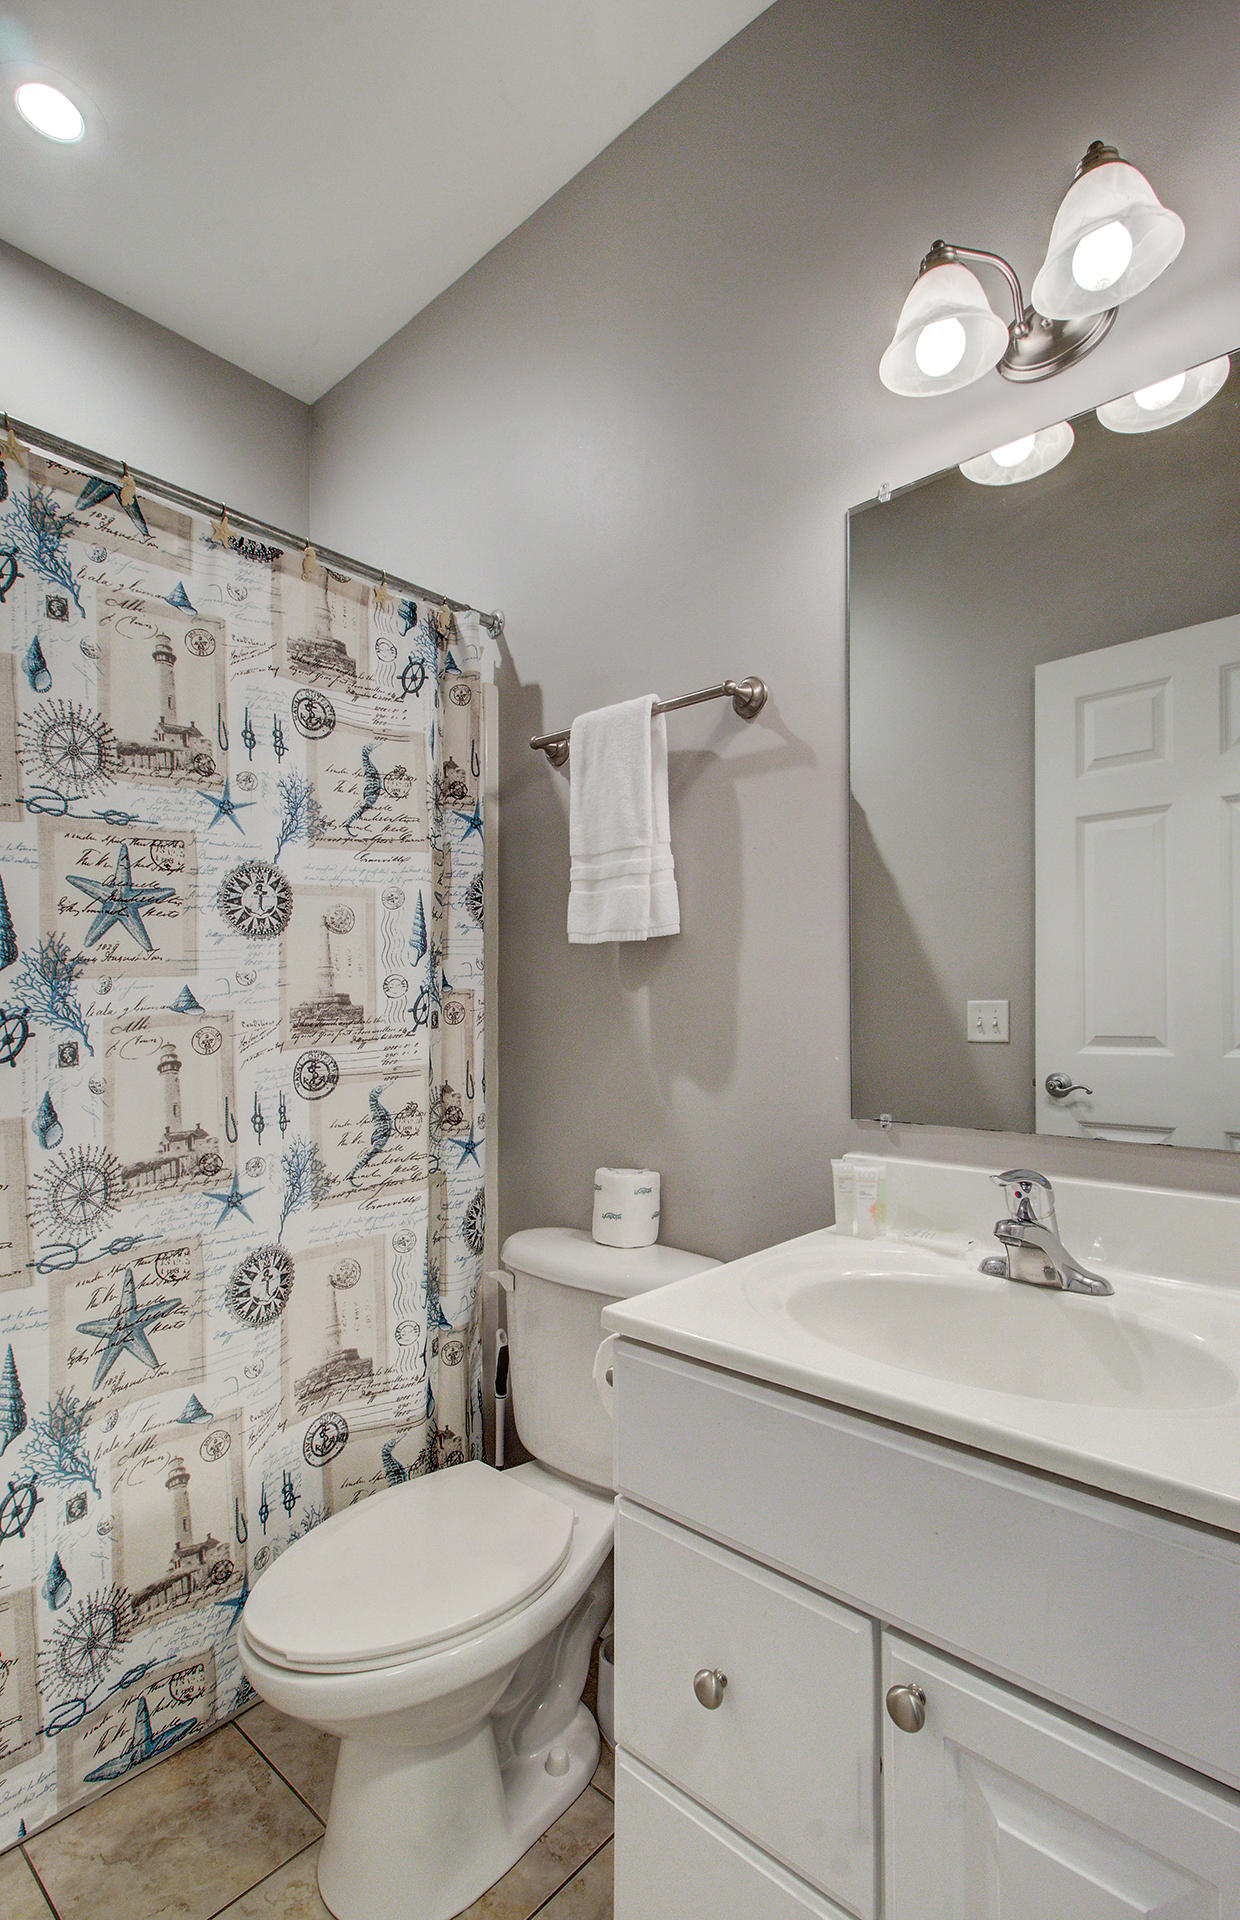 Waters Edge Homes For Sale - 80 2nd, Folly Beach, SC - 5